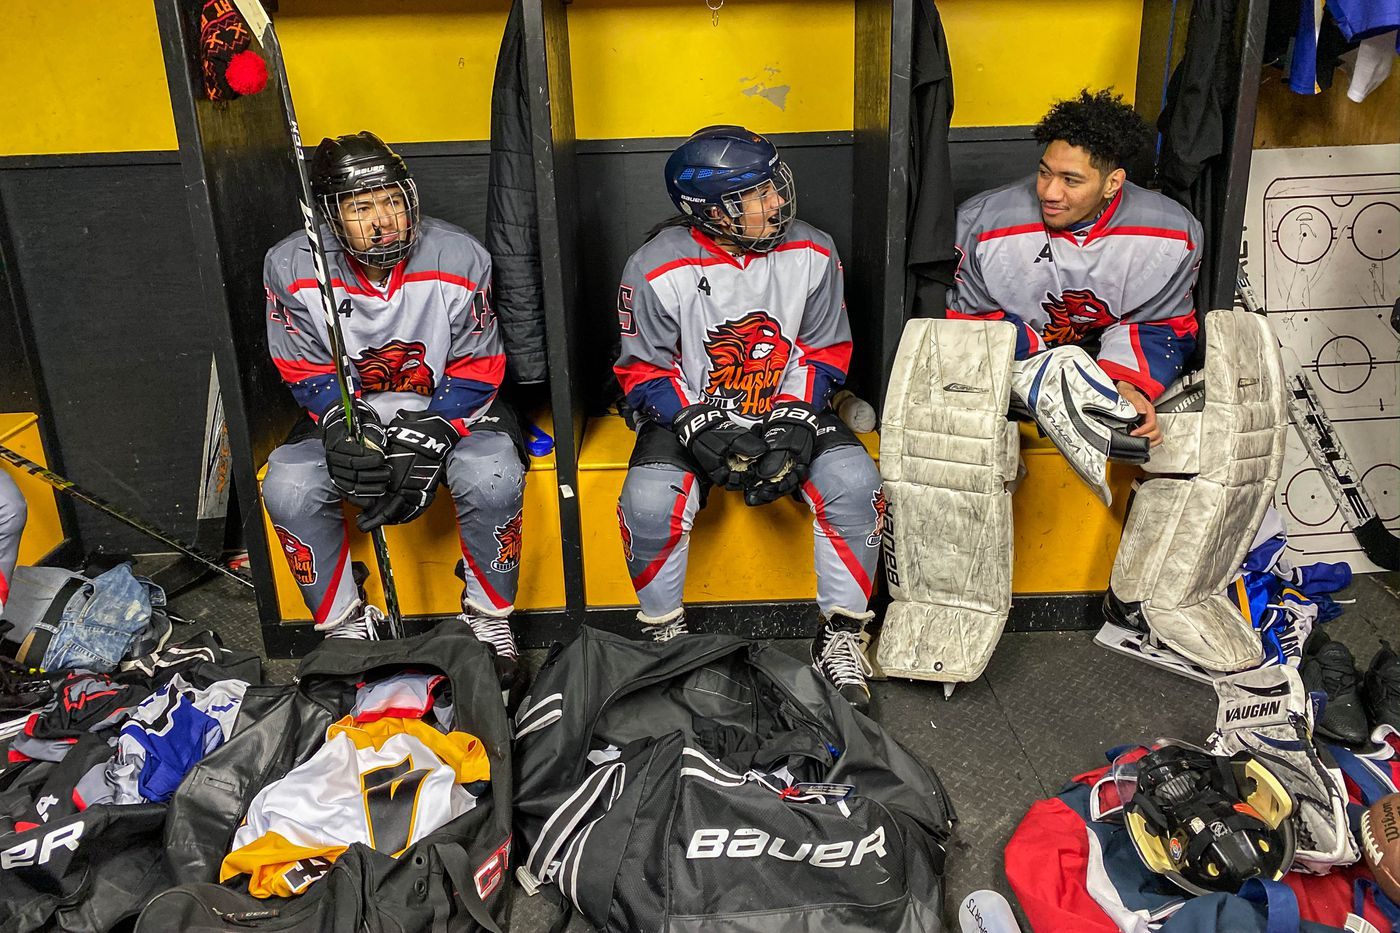 From left, forward Richard Charlie of Tok, defenseman Cassidy Matthews of Glennallen and goalie Charlie Taui of Utqiagvik recover between periods. (Loren Holmes / ADN)